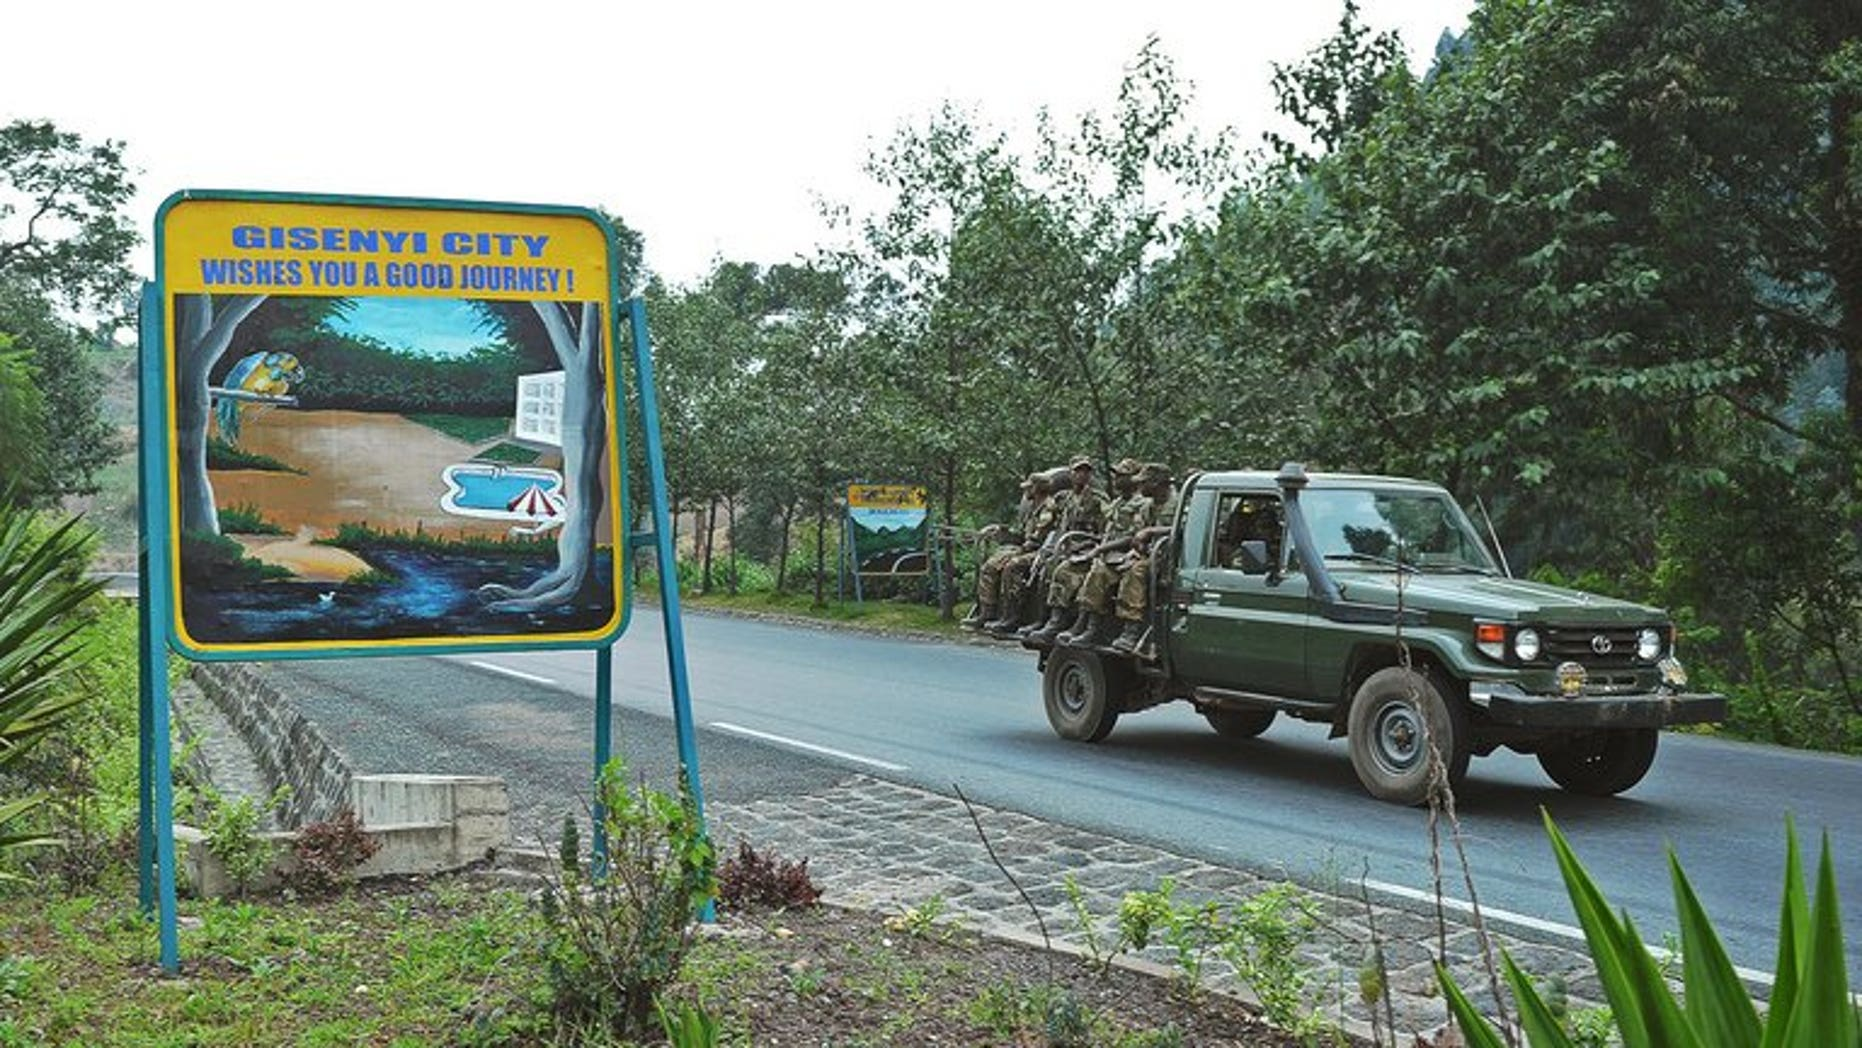 Rwandan soldiers pass a sign welcoming drivers to the city of Gisenyi, on the border with the Democratic Republic of Congo on August 30, 2013. Southern African nations have expressed concern at the growing number of Rwandan troops on the border of the Democratic Republic of Congo and said it hoped an invasion was not imminent.